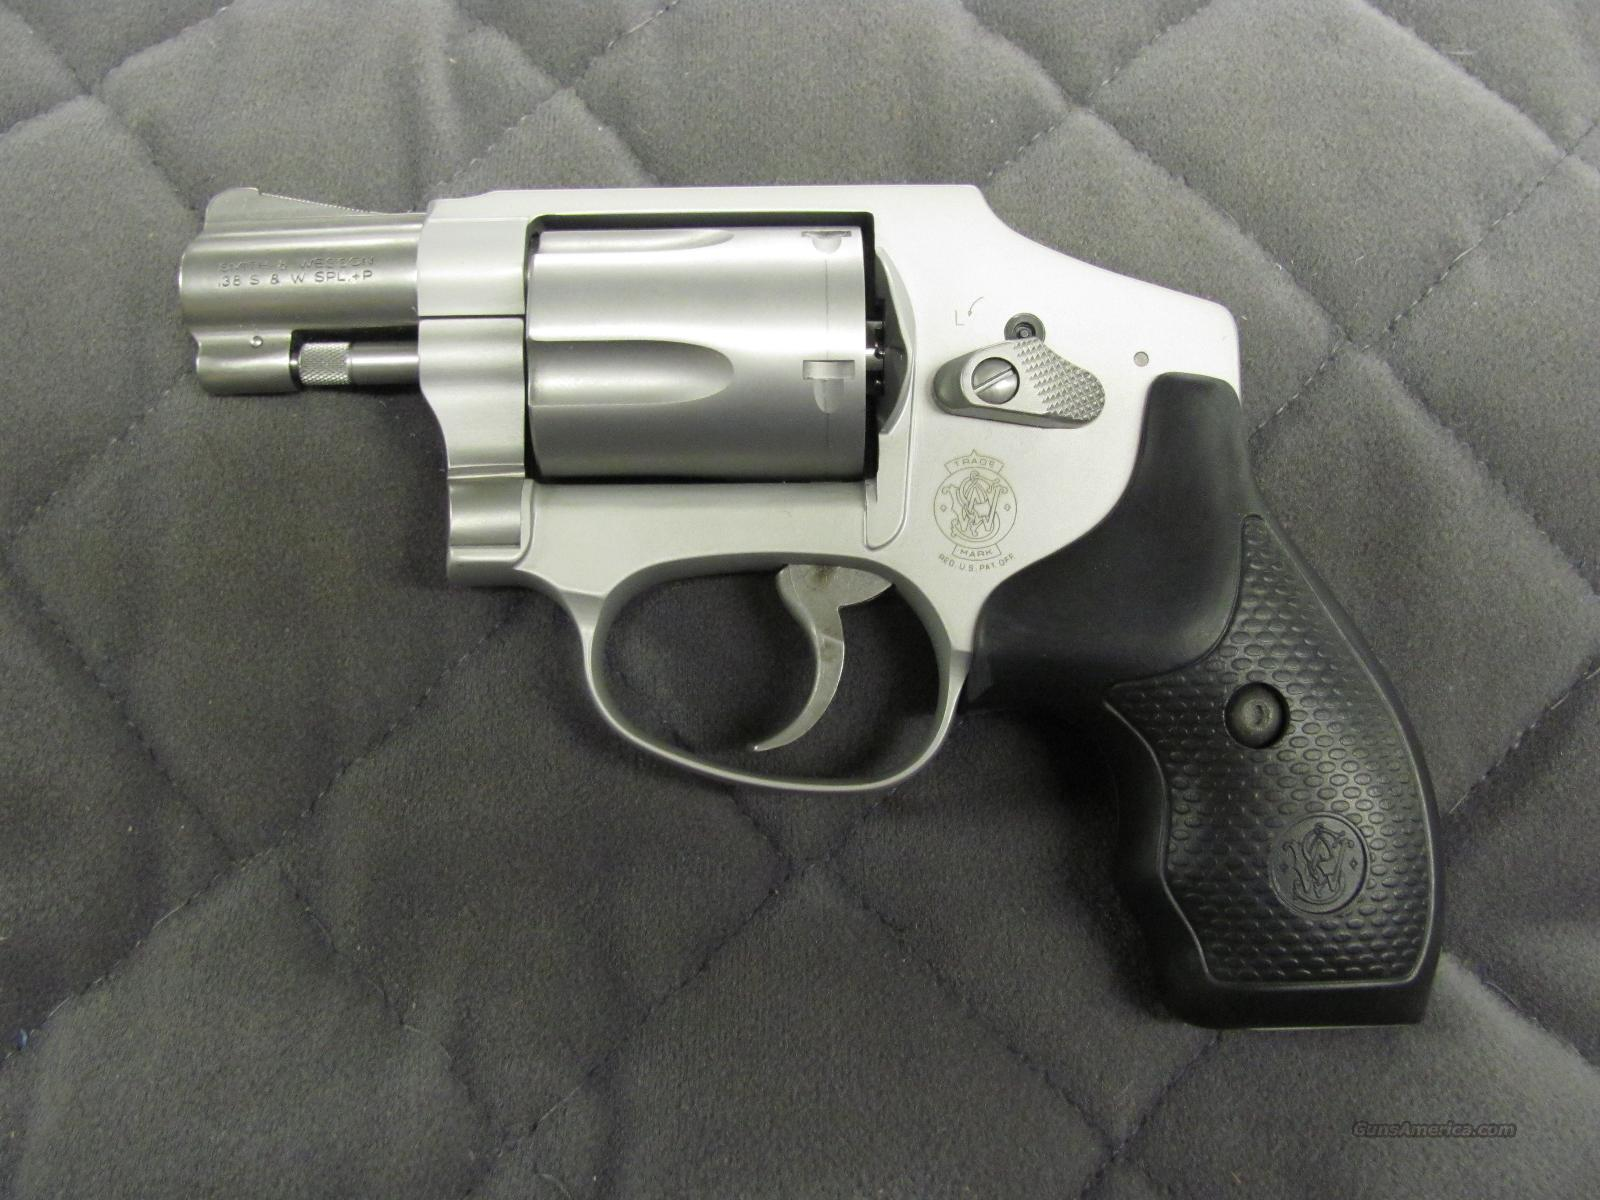 Smith & Wesson Model 642 38 special  **NEW**  Guns > Pistols > Smith & Wesson Revolvers > Pocket Pistols